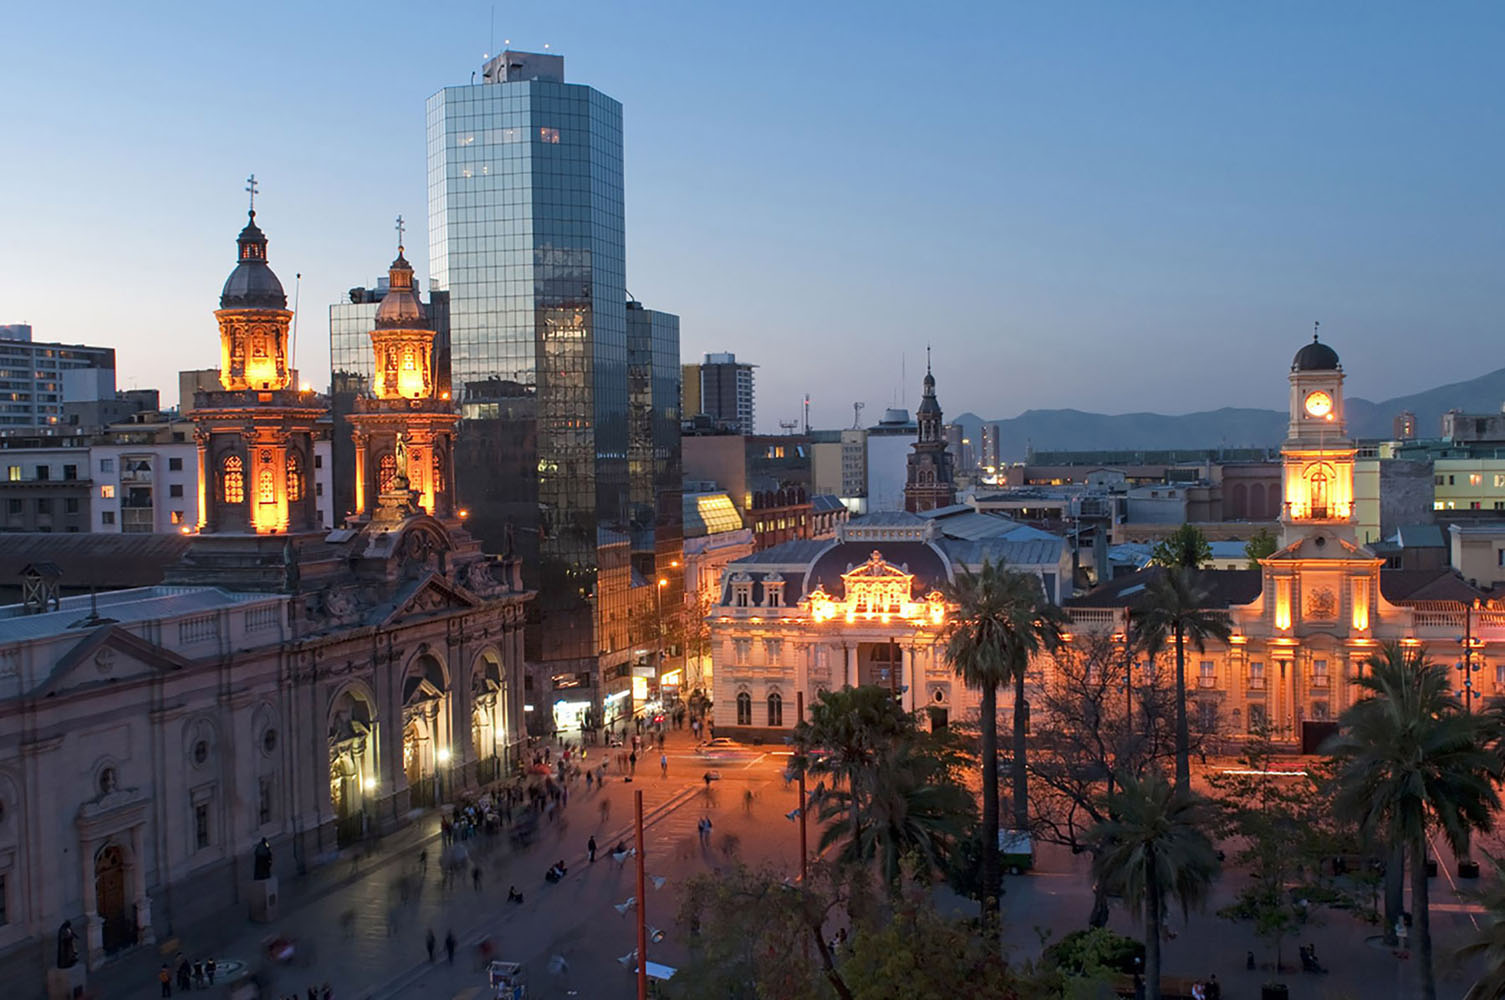 Plaza de Armas at sunset in Santiago, Chile